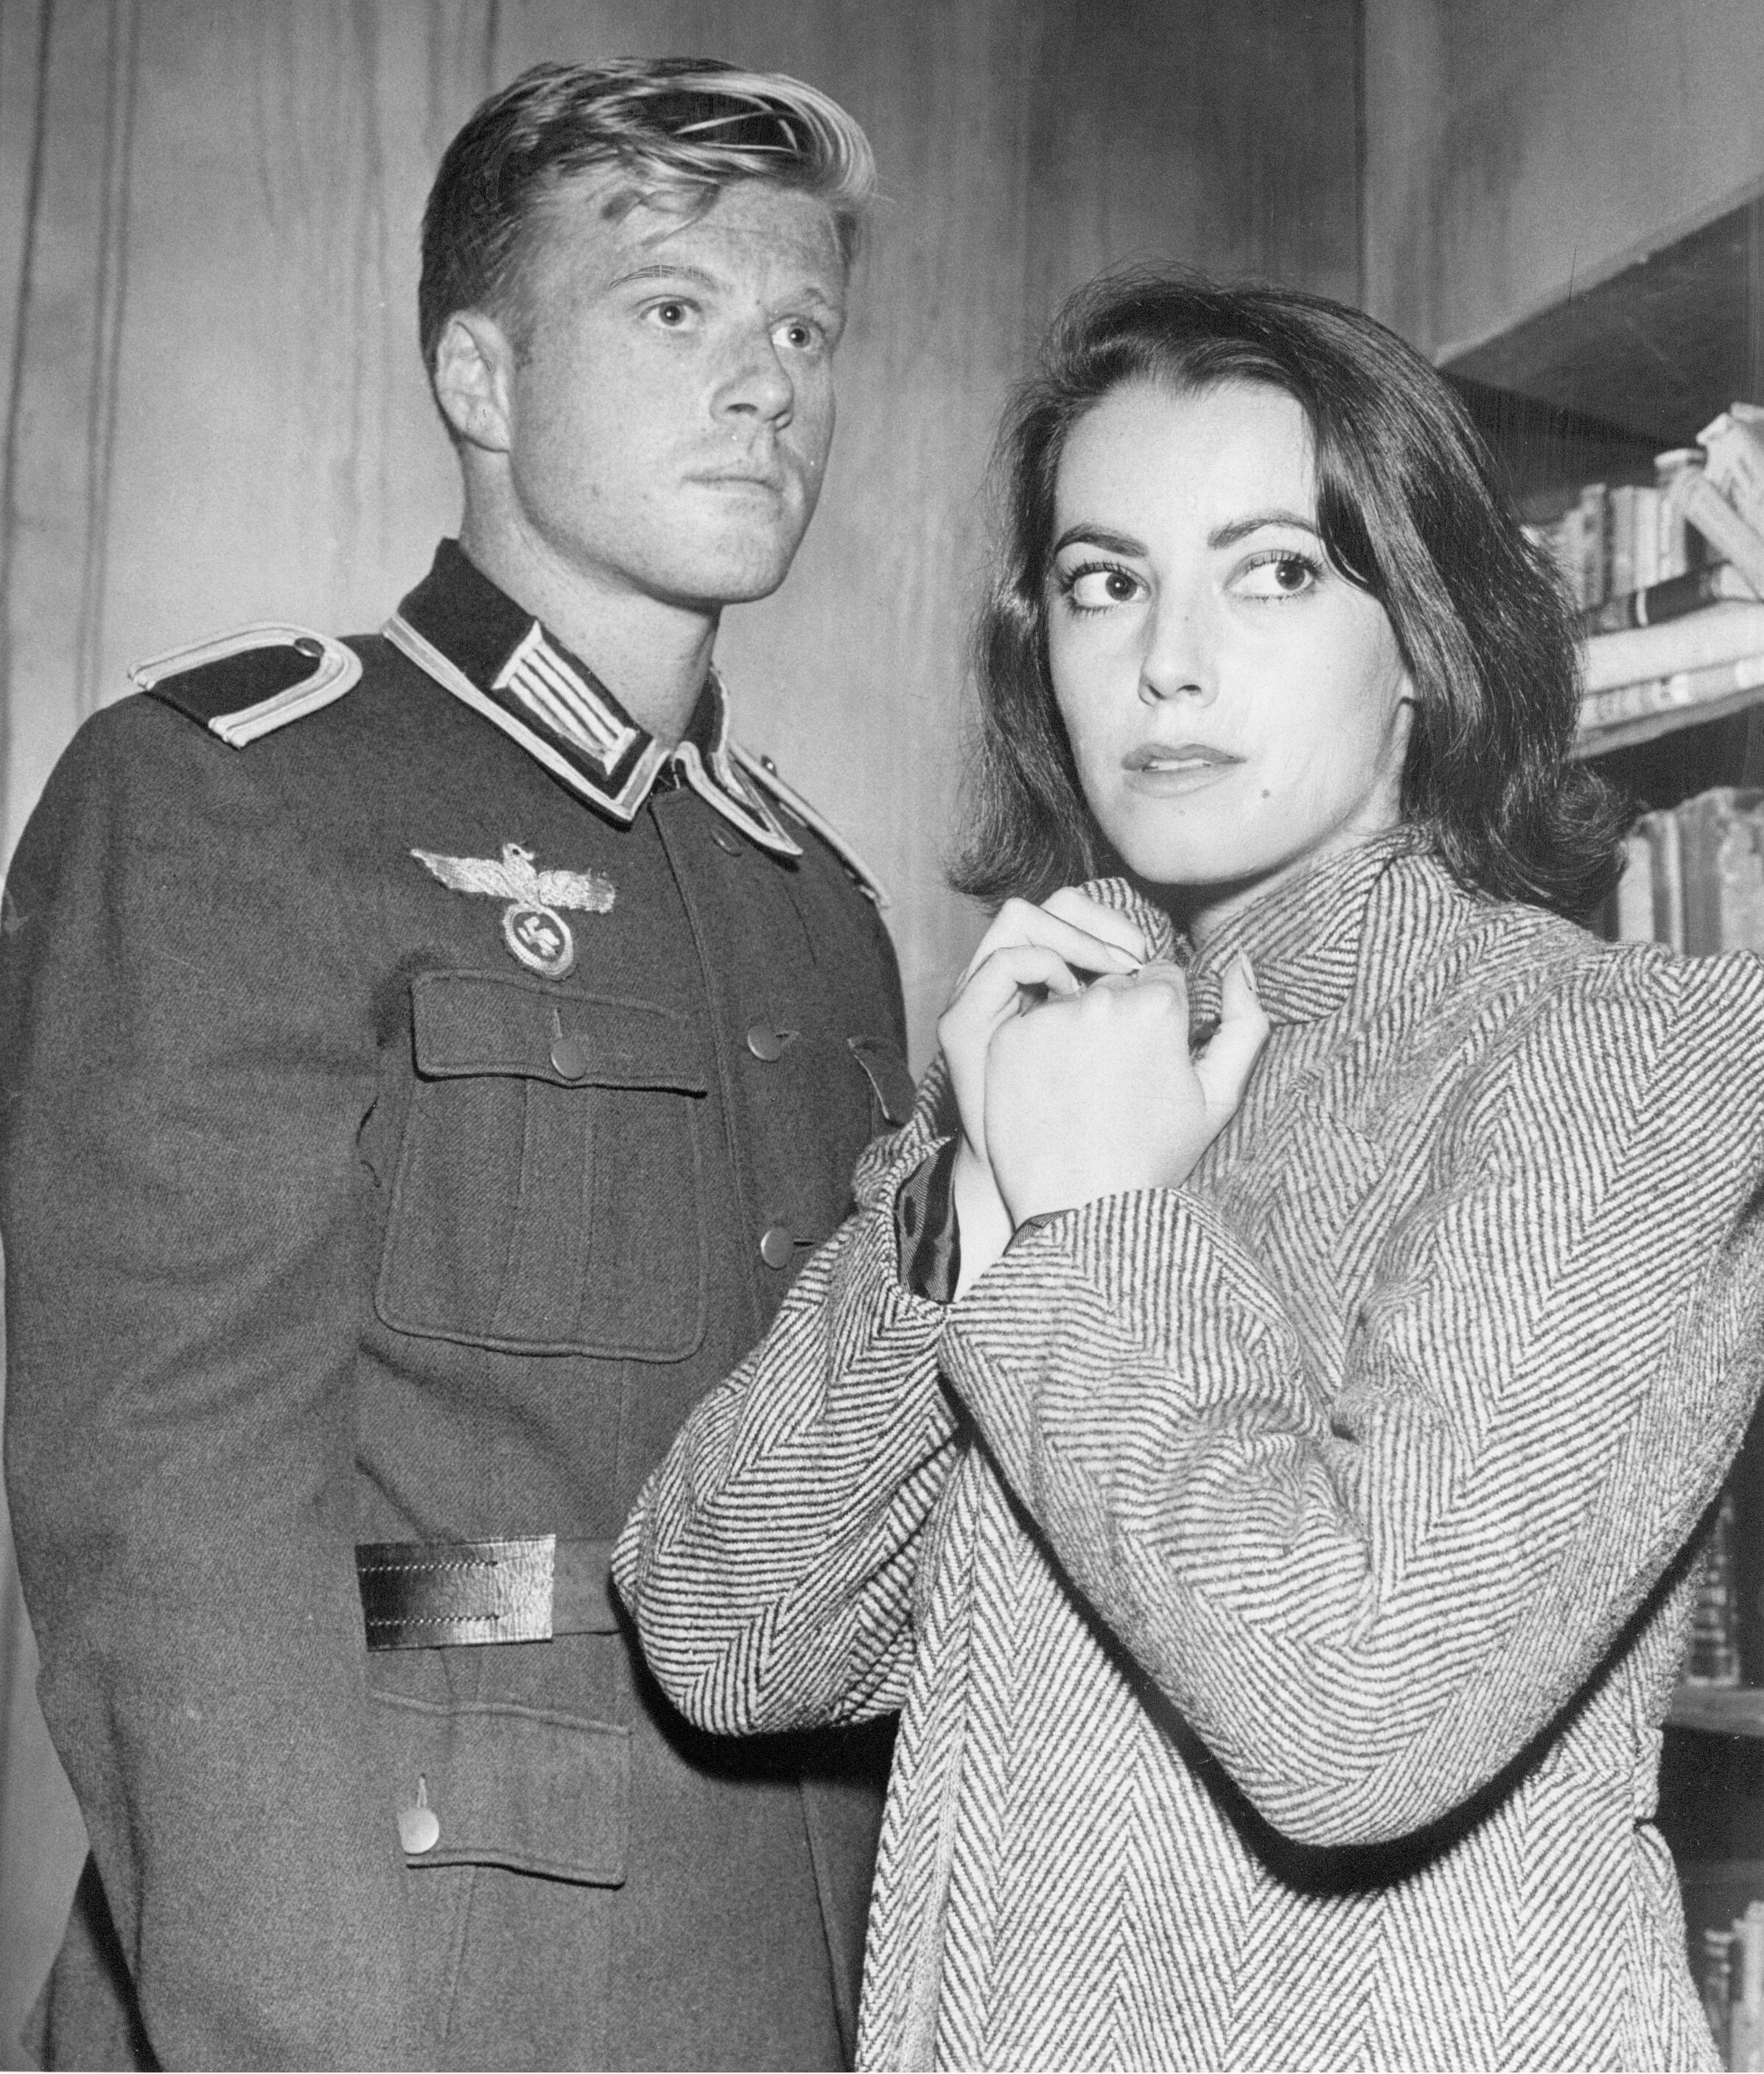 Playhouse 90 (CBS) TV series Season 4 Episode 17: In the Presence of Mine Enemies, May 18, 1960 Shown from left: Robert Redford, Susan Kohner